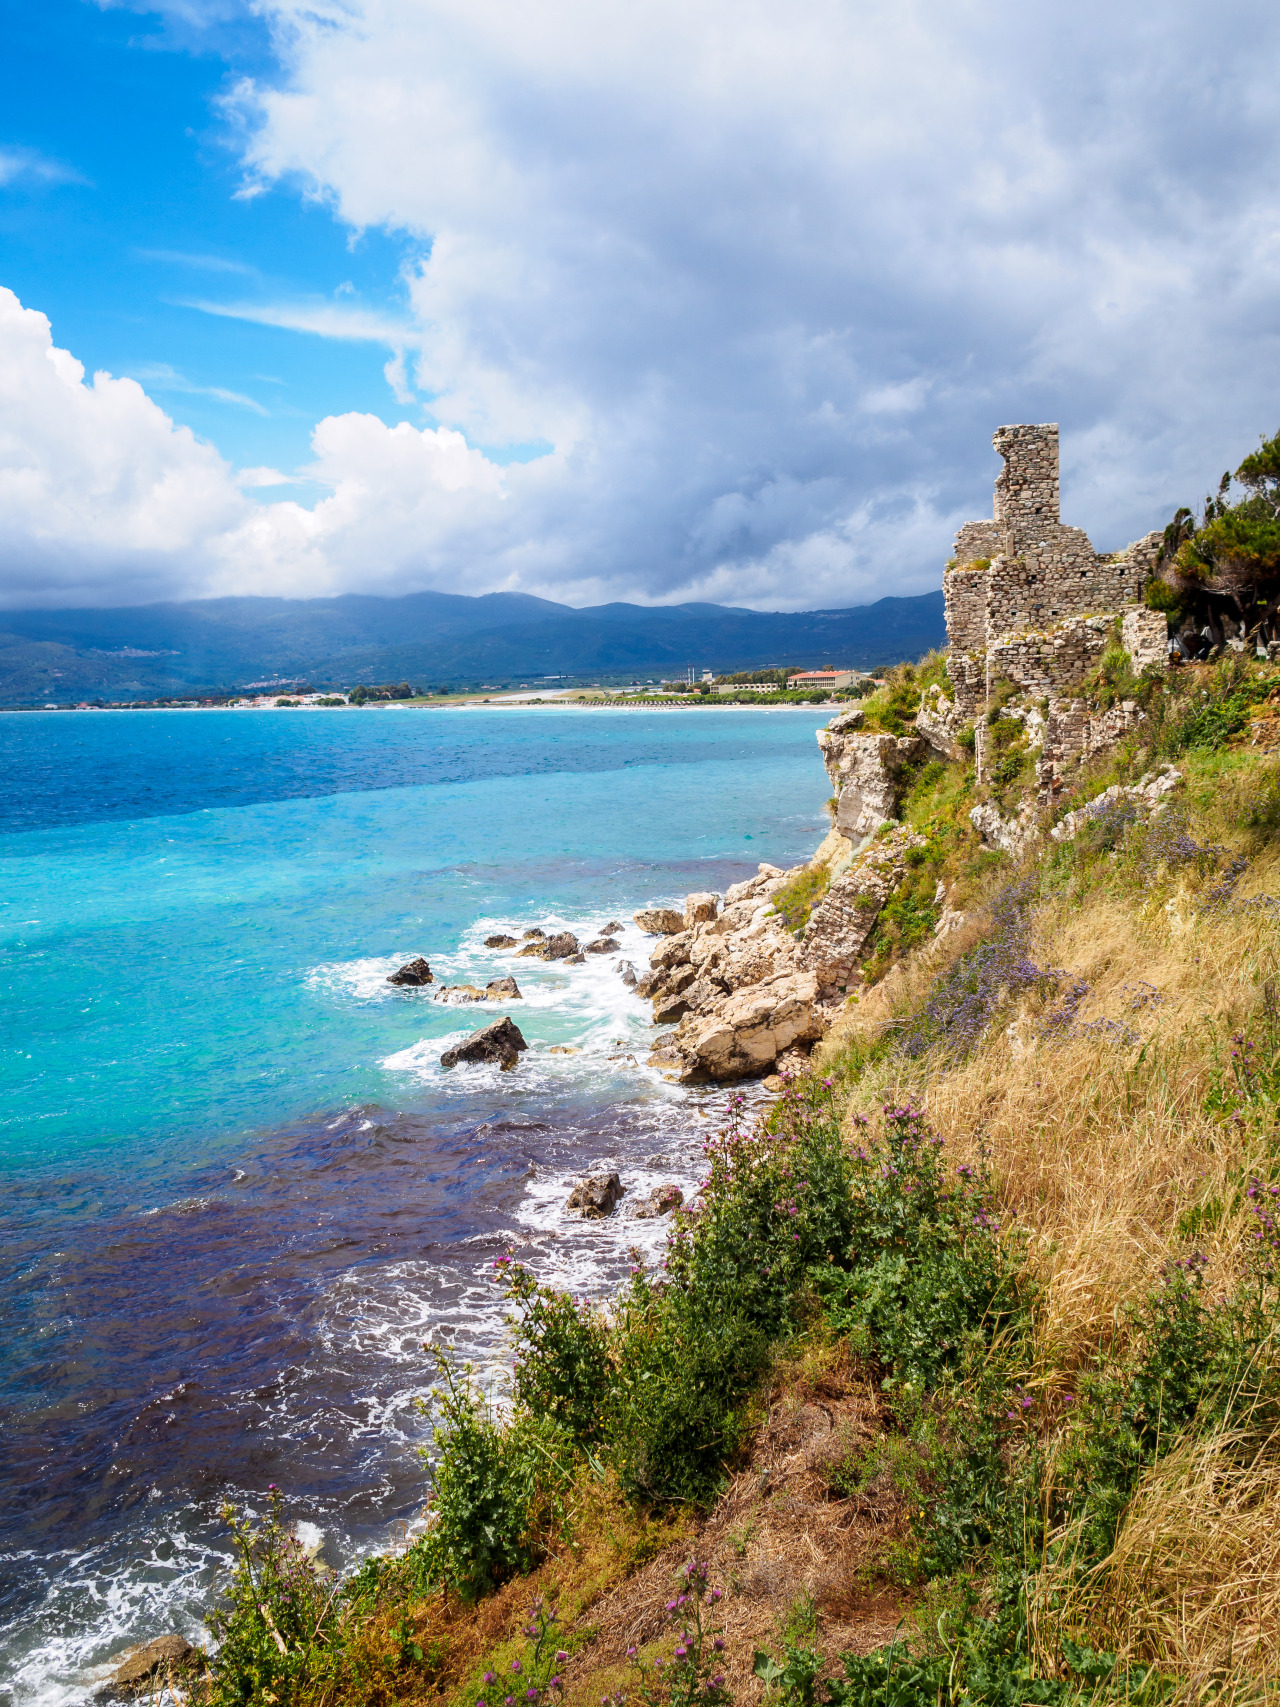 sevenyearsinadvertising:Seashore ruins in Greece